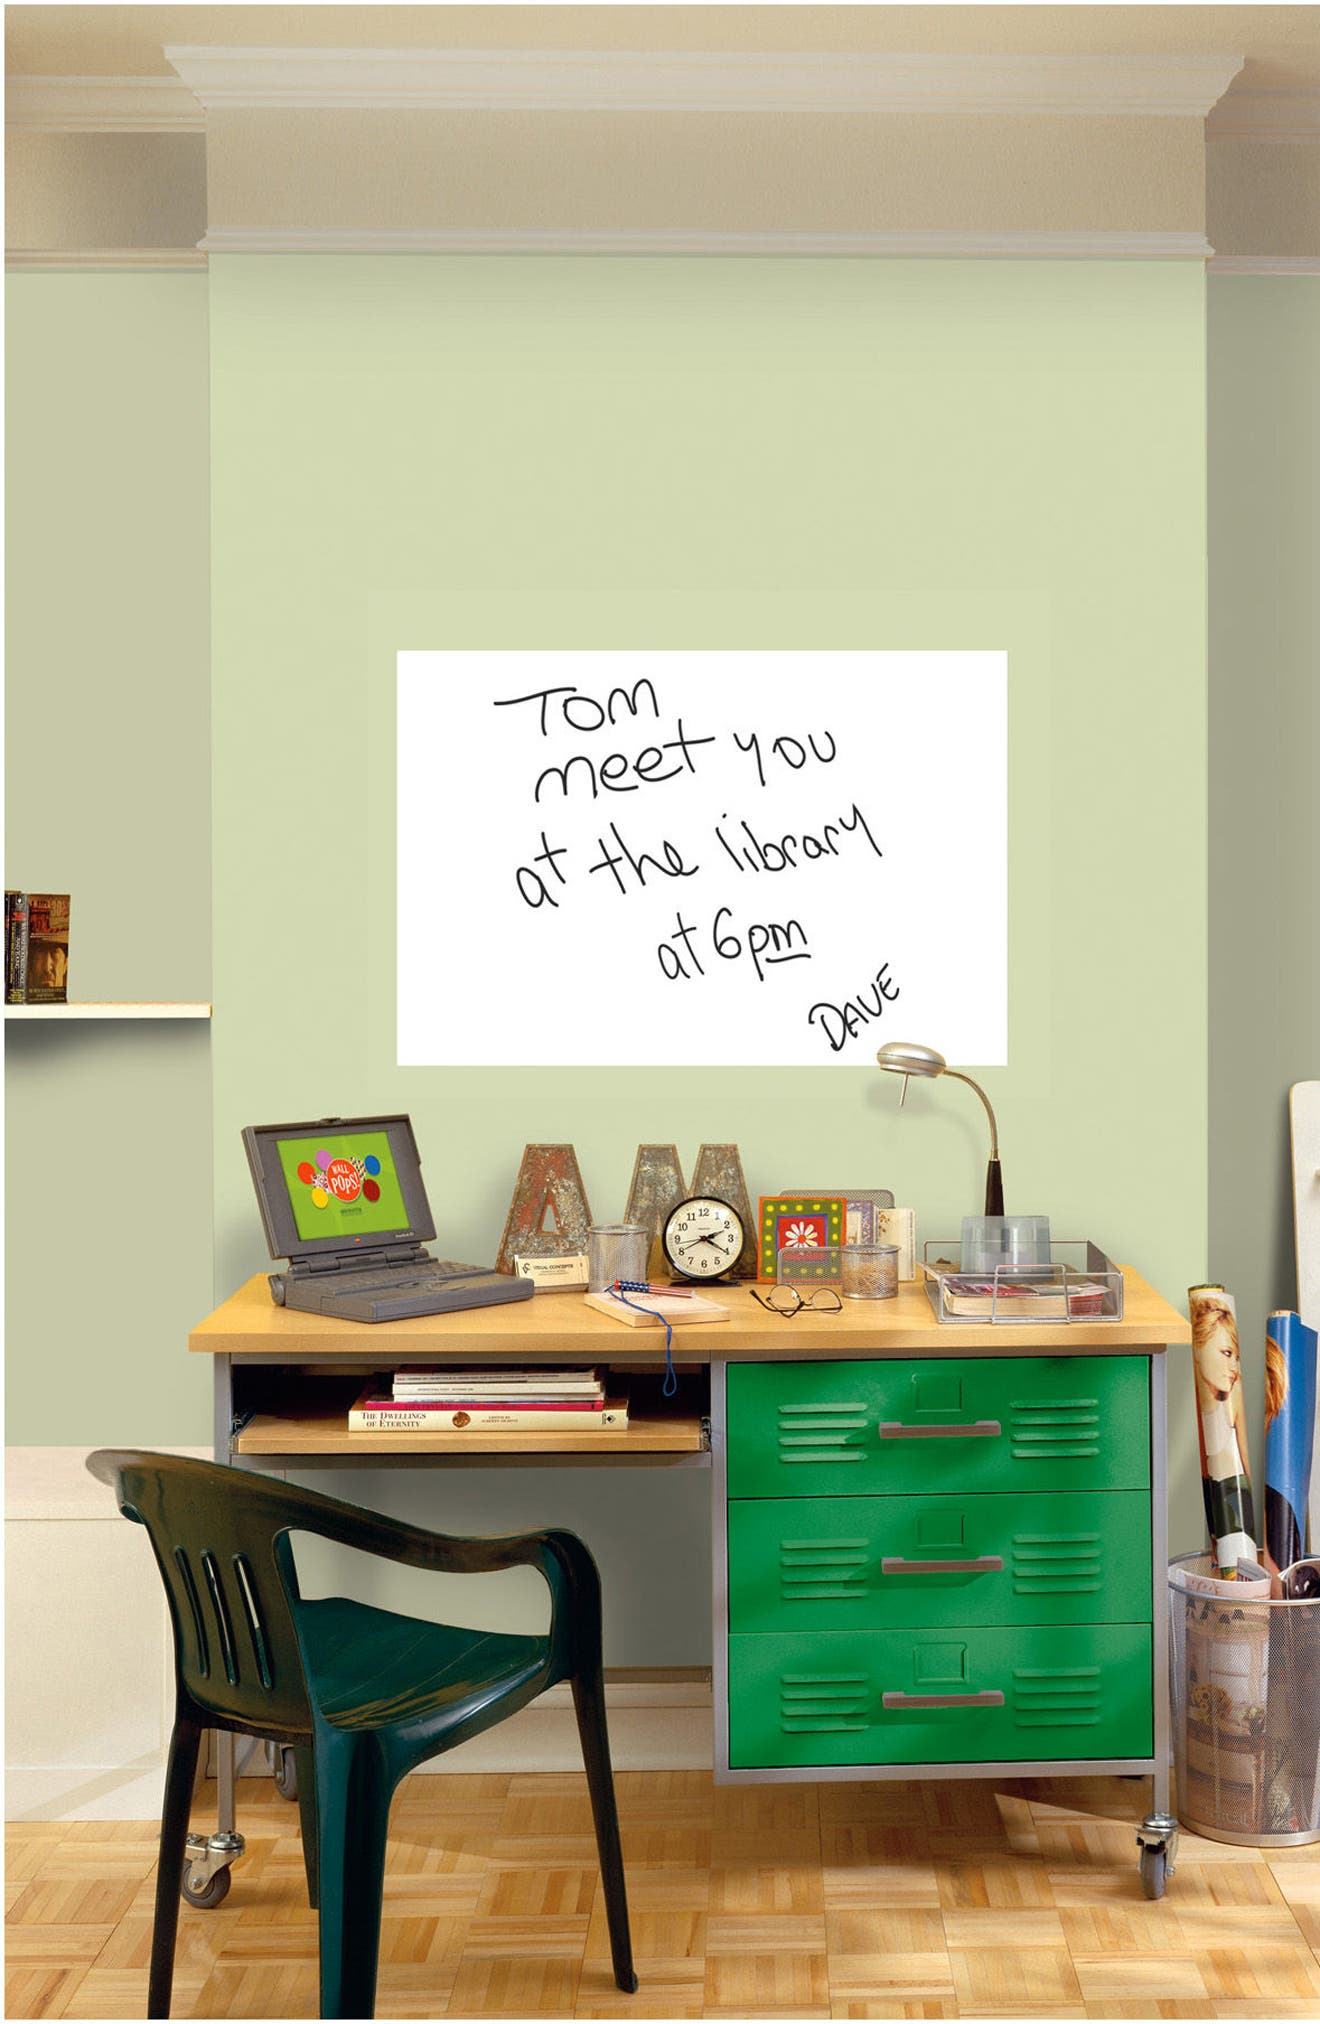 Set of 2 Dry Erase Wall Decals,                             Alternate thumbnail 2, color,                             100